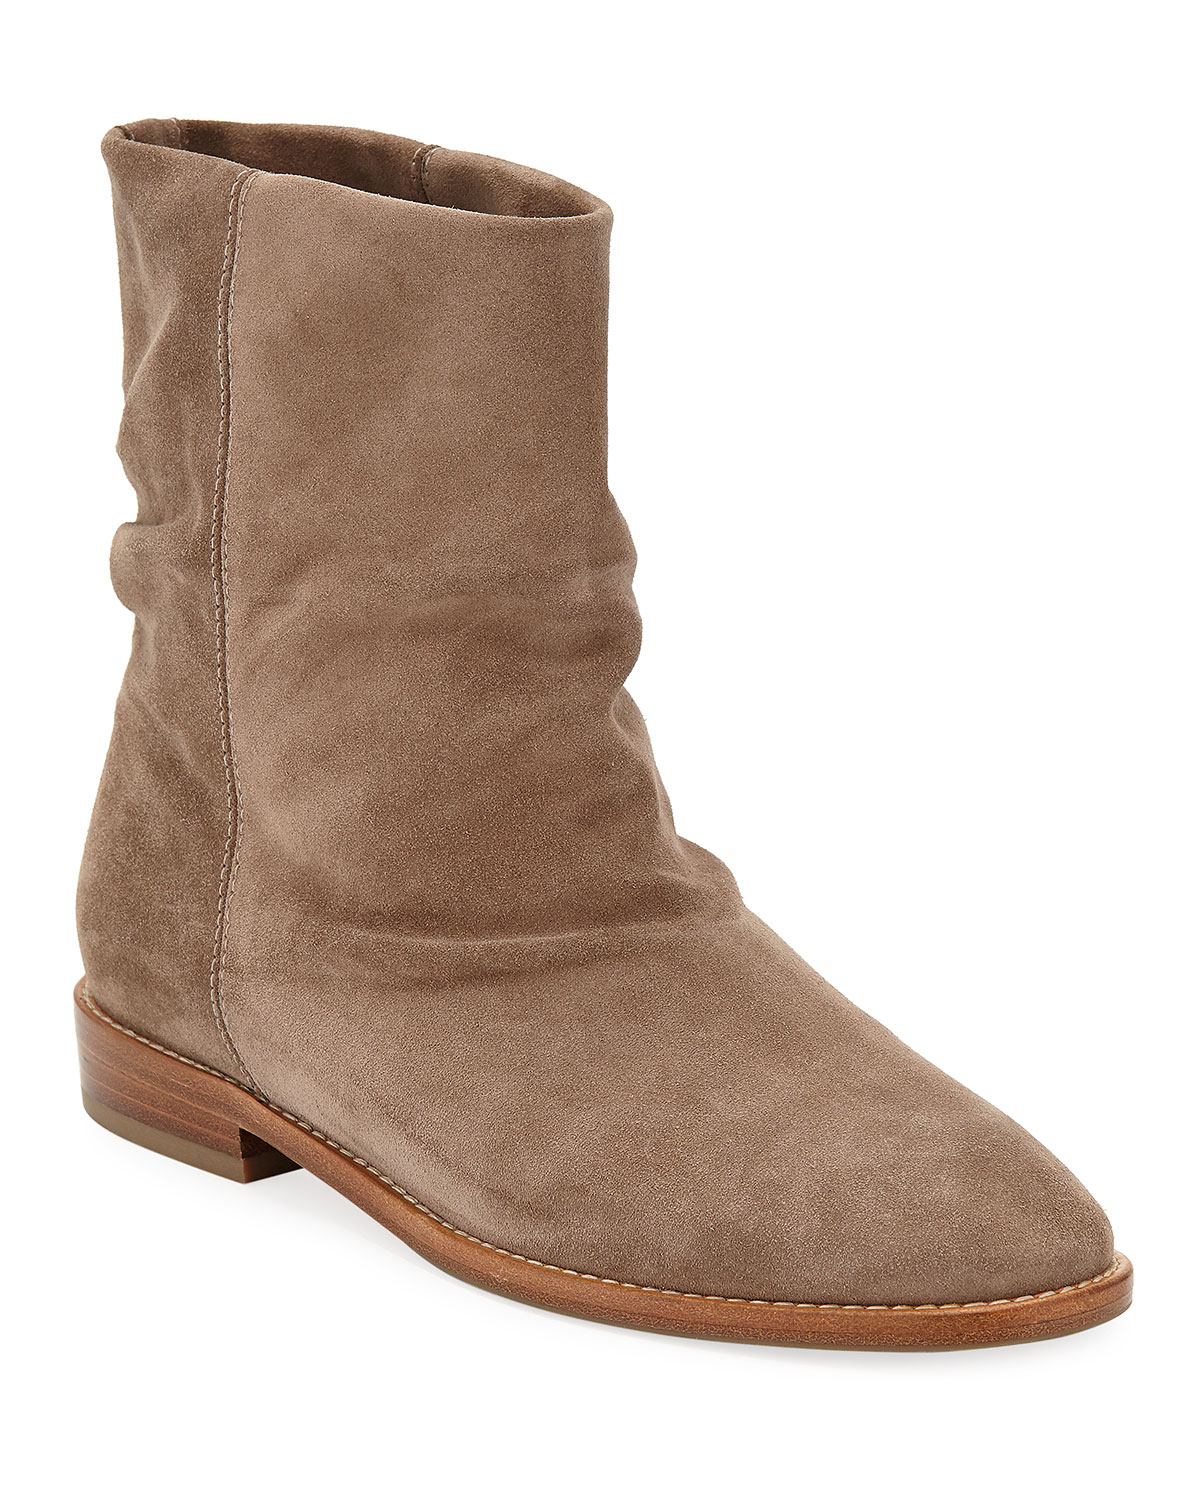 5057f5ccb Aquatalia Caleigh Weatherproof Suede Boots